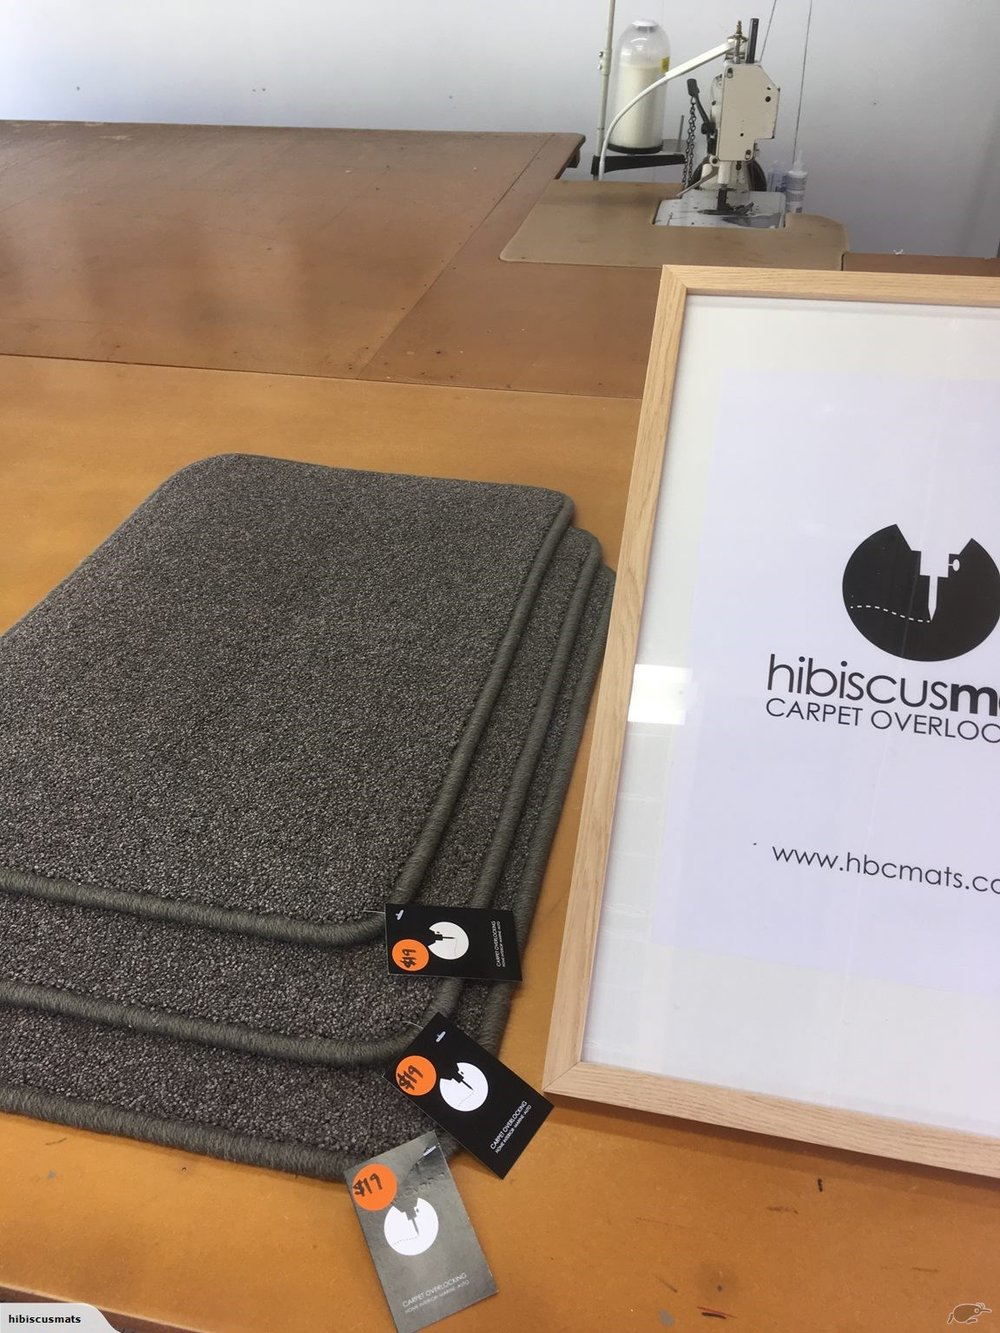 Carpet Mat 0.70m x 0.48m by Hibiscus Mats Carpet Overlocking $19 - Solution dyed nylon carpet mat cut & overlocked by Hibiscus Mats Carpet Overlocking. - Measures 0.70m x 0.48m- Colour: Charcoal Grey- Rounded corners to prevent curling- Can be gripped with Giltgrip Rug Grip for an additional fee